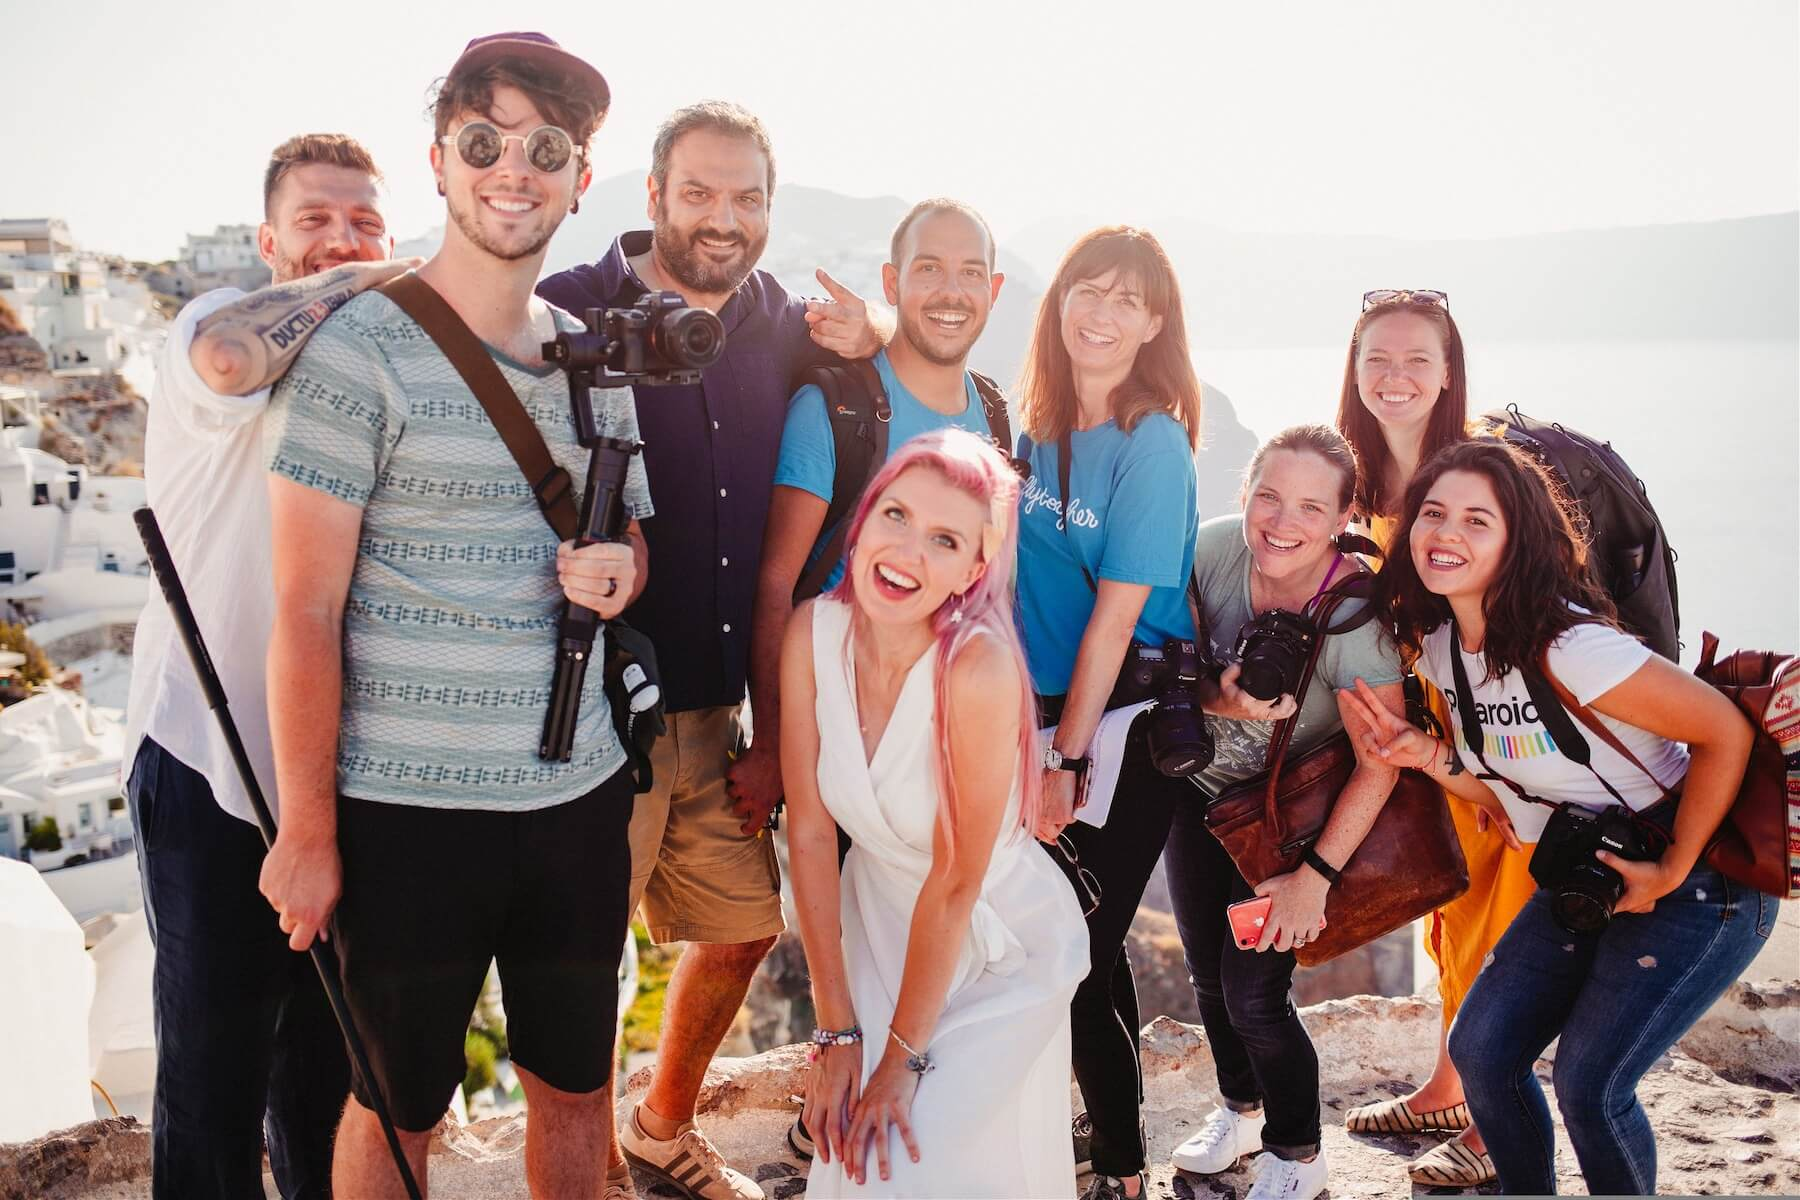 Group of people smiling and laughing in Santorini, Greece.